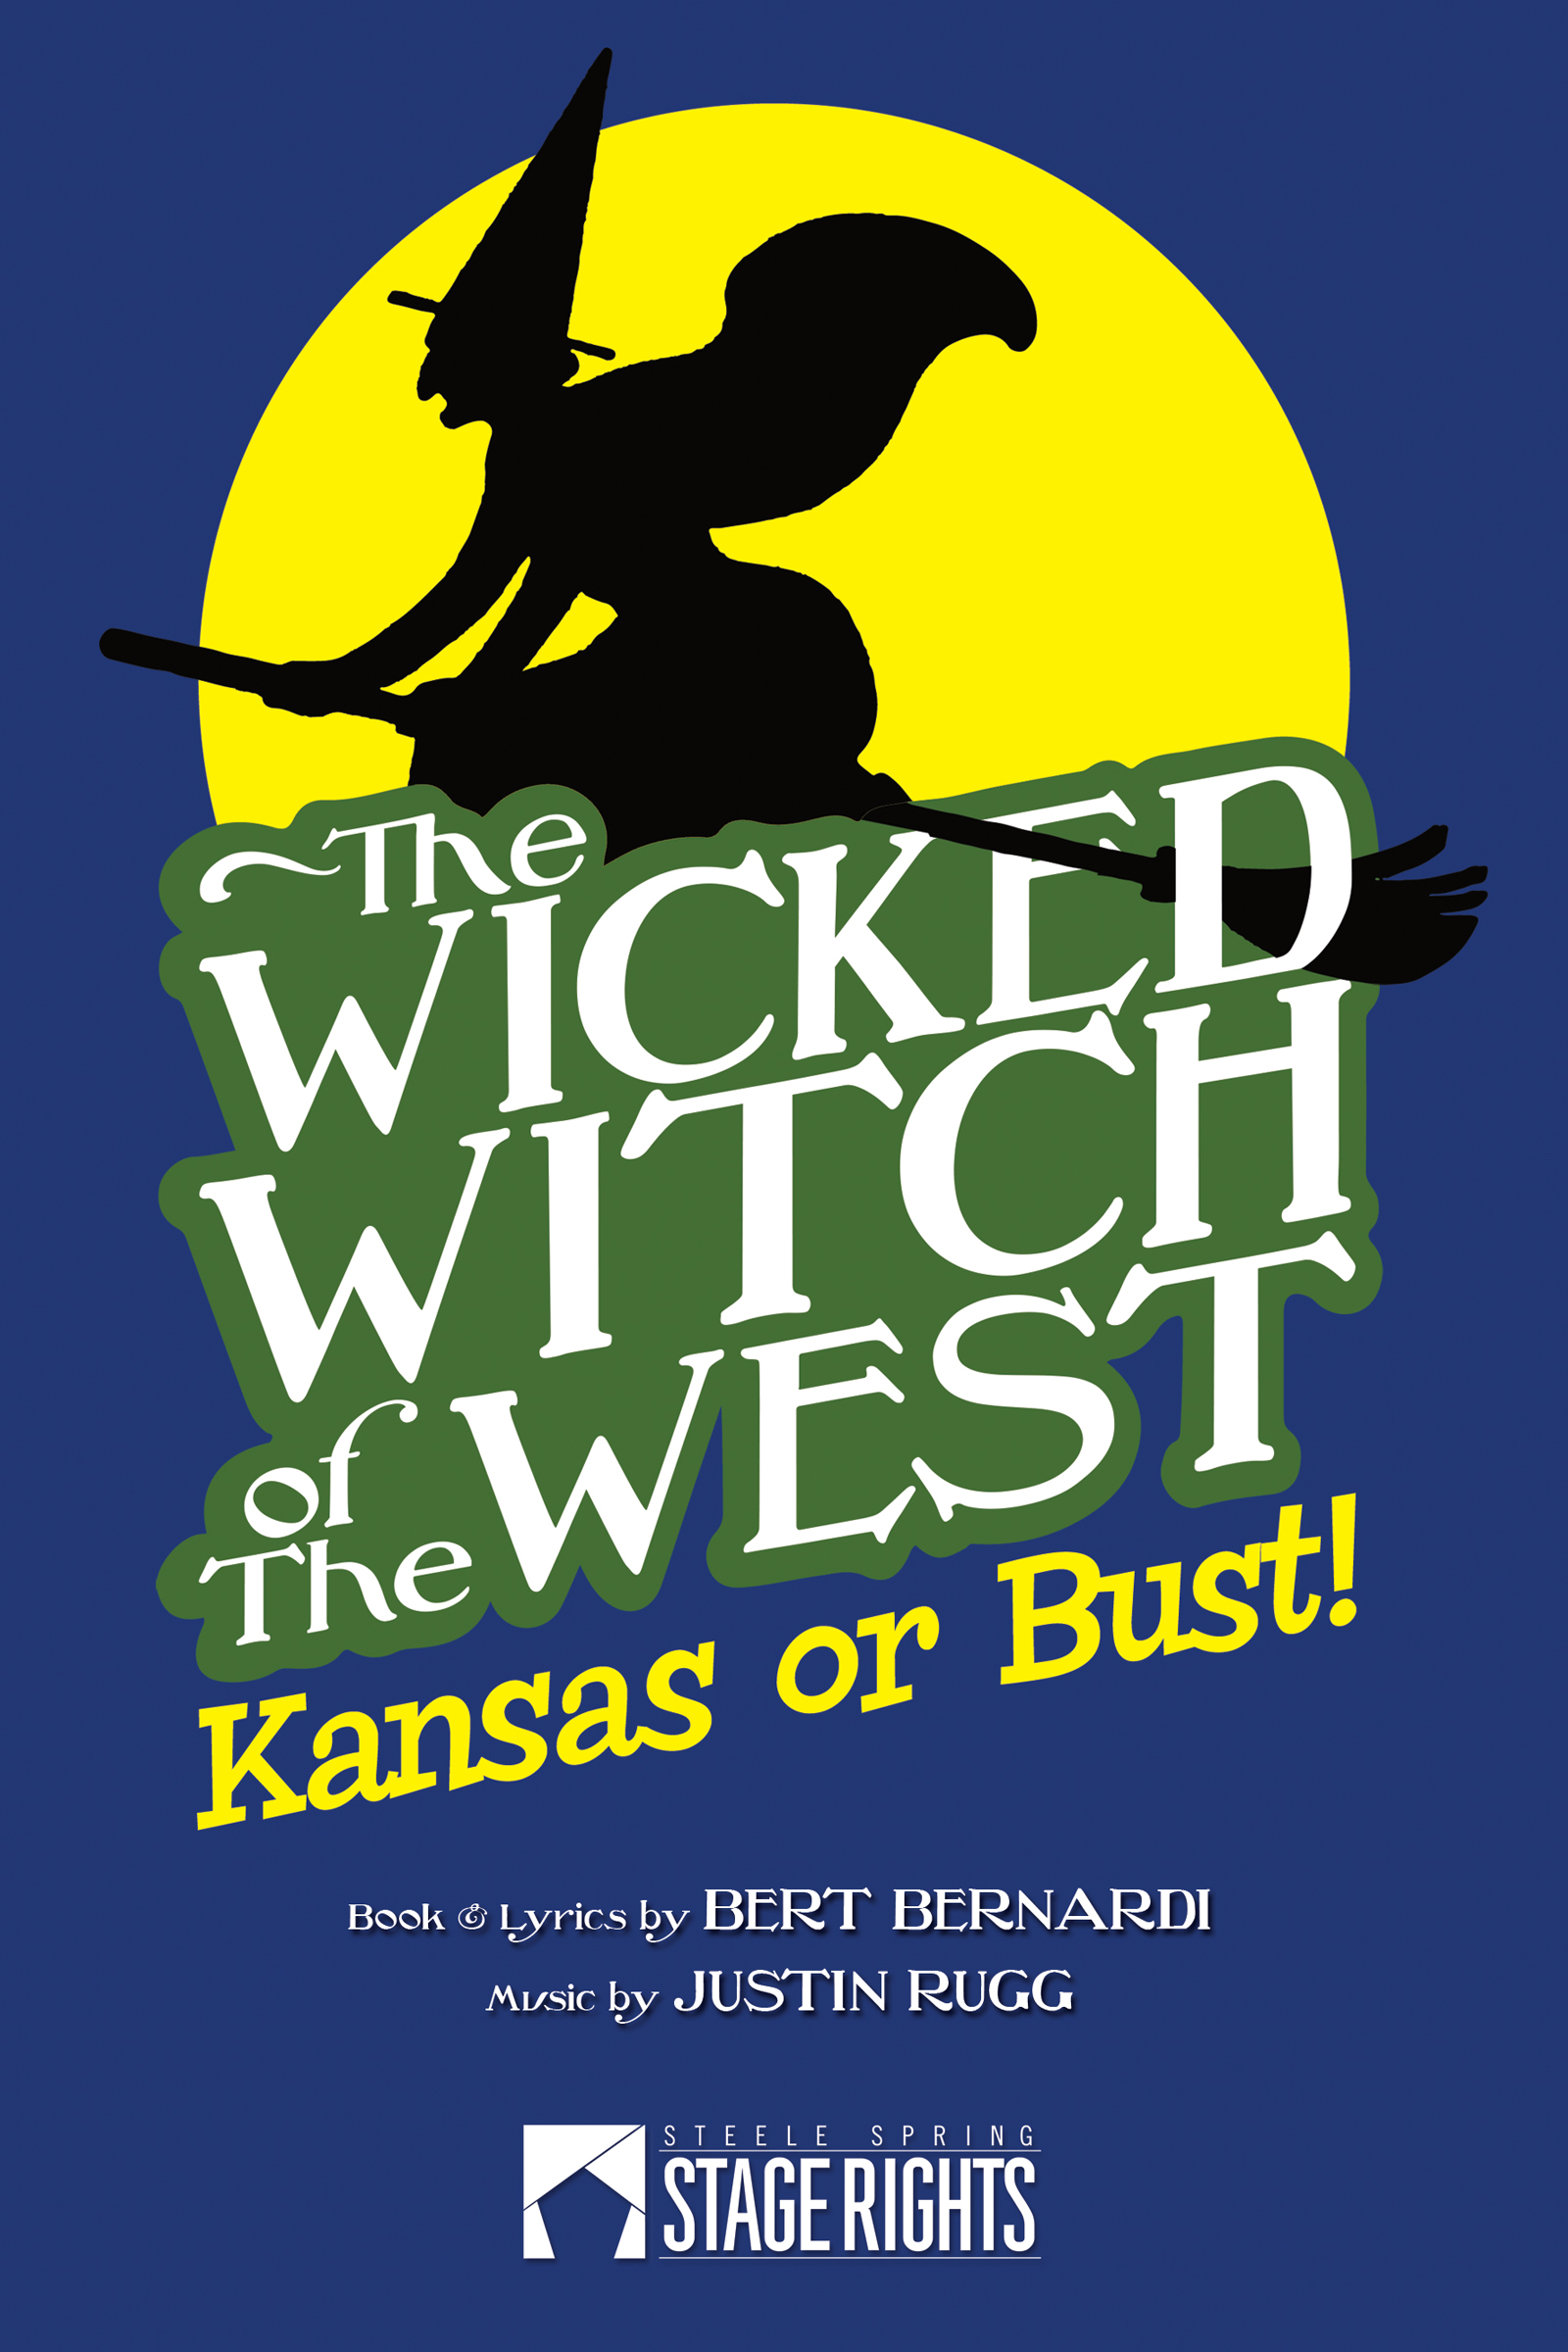 The Wicked Witch of the West: Kansas or Bust!, an Ebook by Bert Bernardi